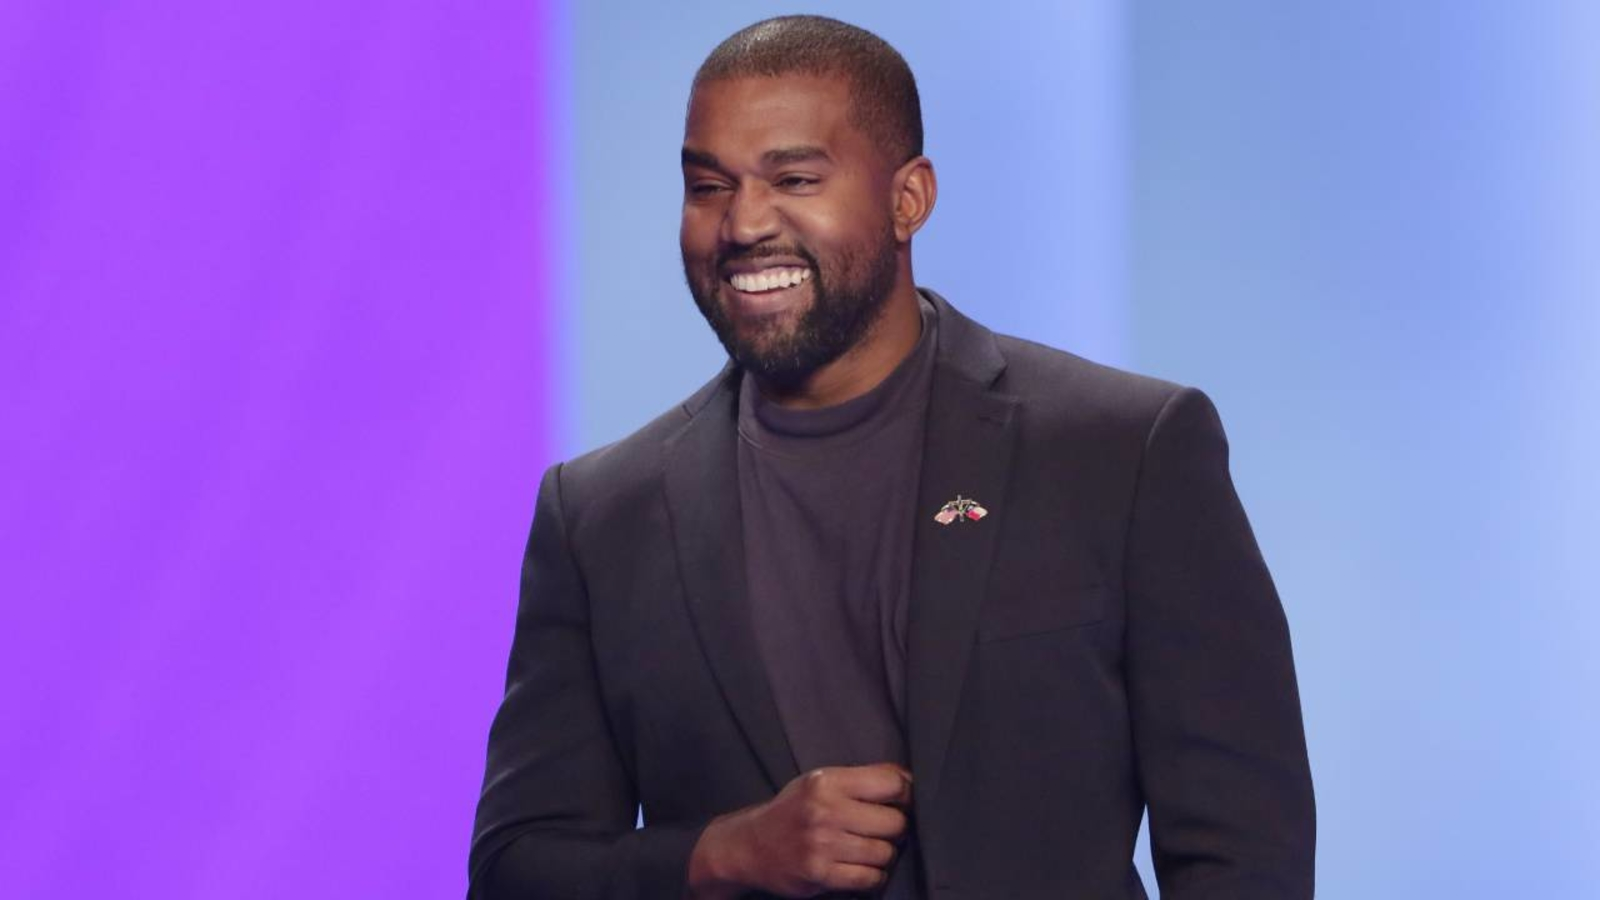 Kanye West For President Rapper Files To Be On New Jersey S Presidential Ballot Abc7 New York